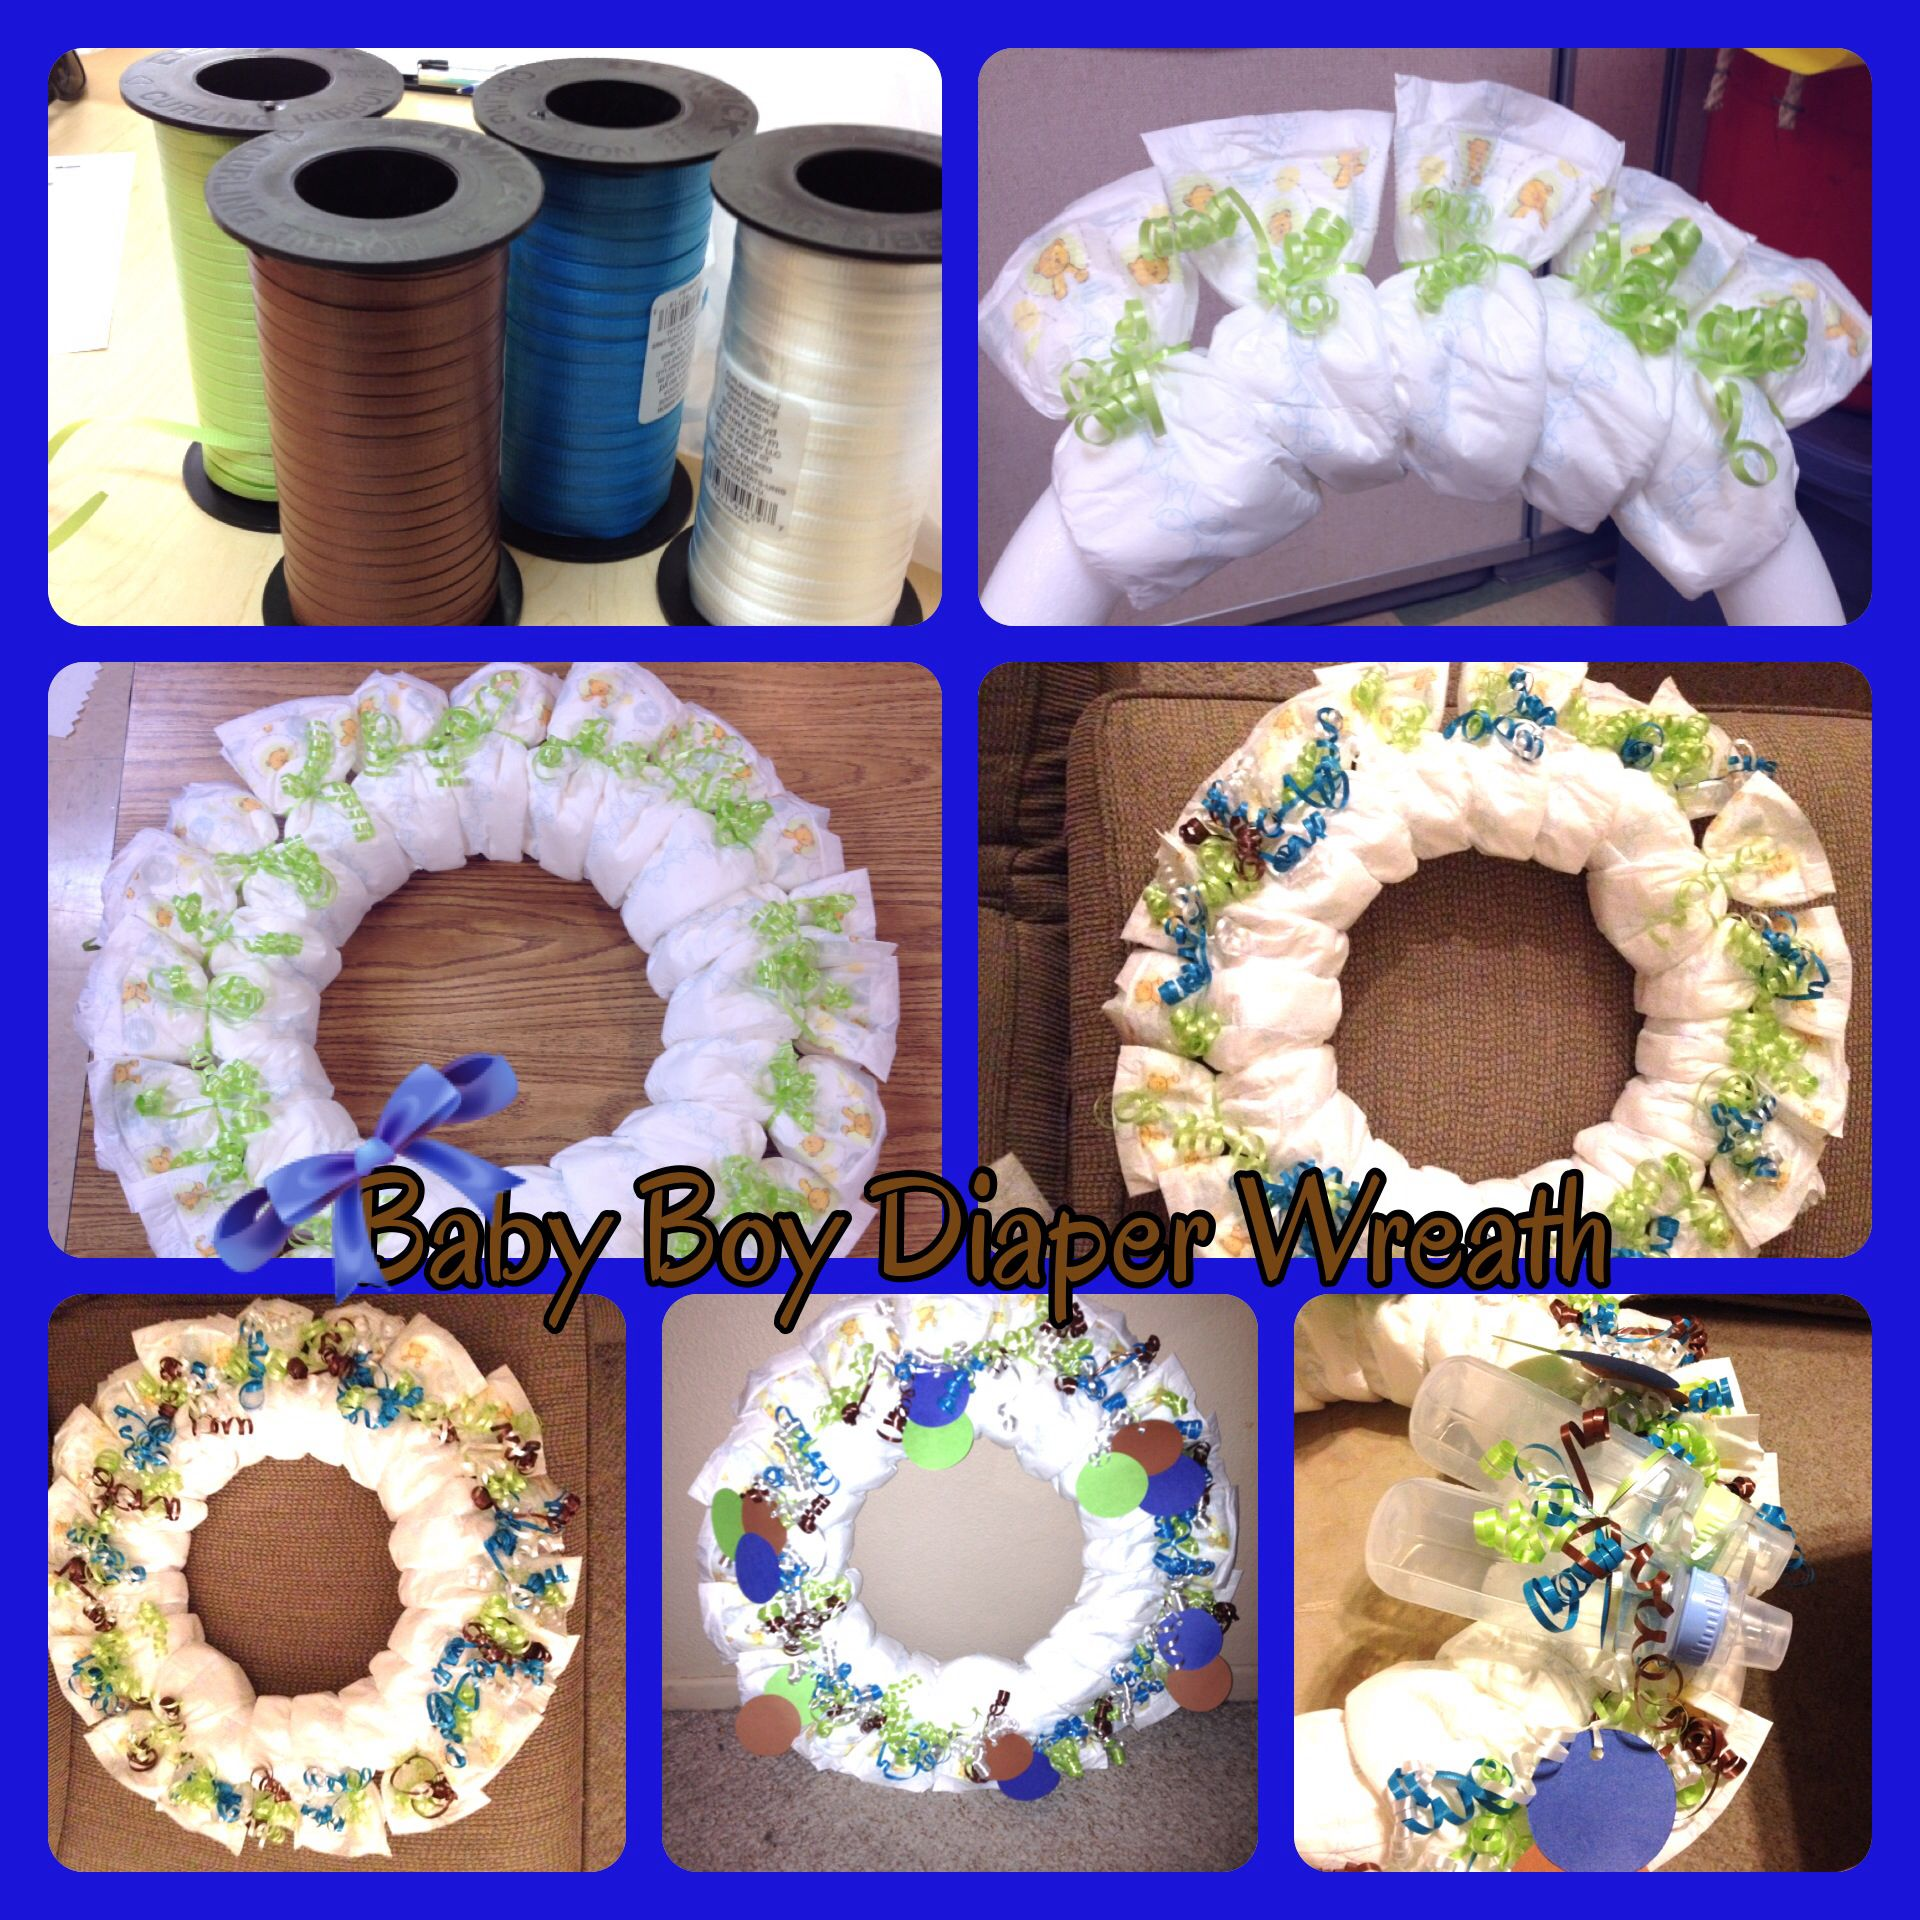 Baby Boy Wreath I Made For A Friends Baby Shower